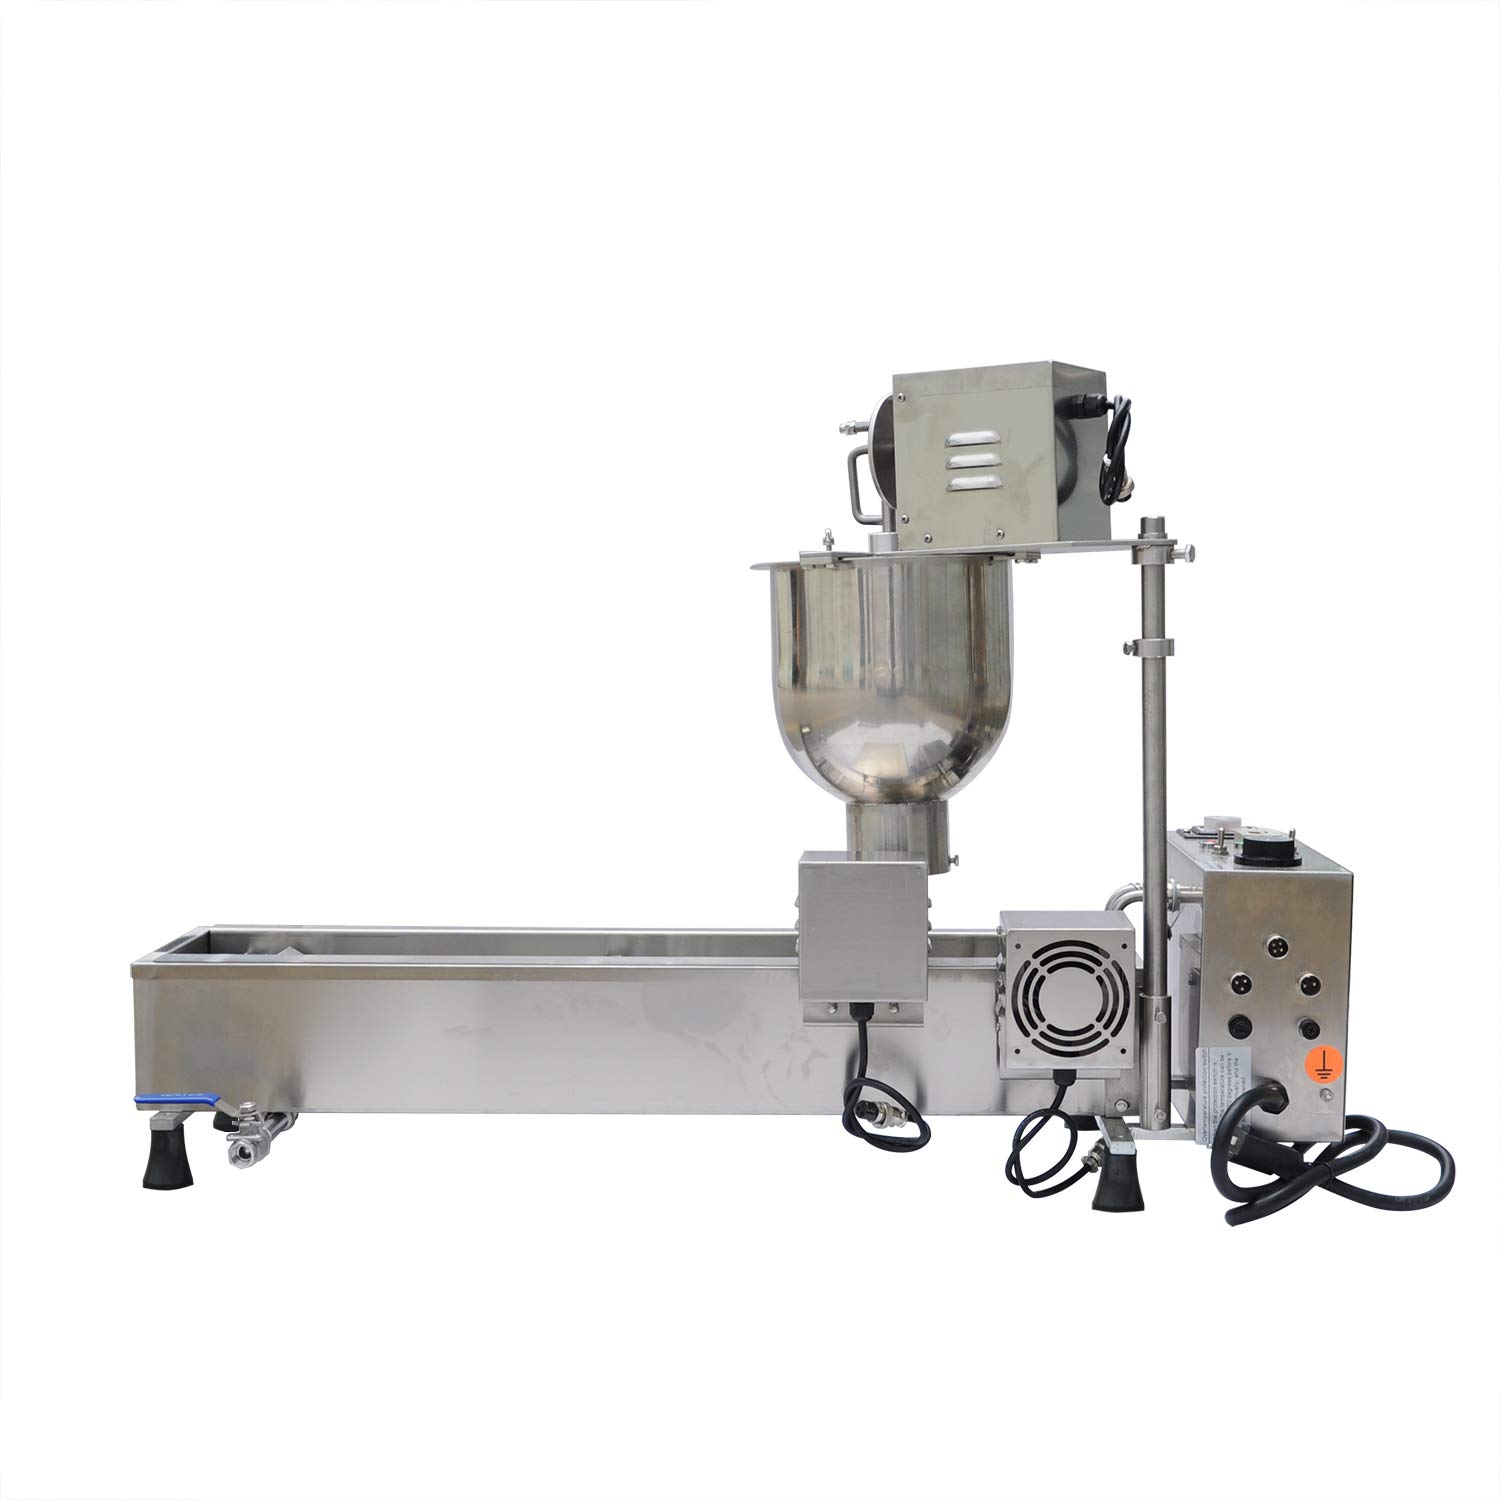 Wotefusi New Donut Frying Machine Commercial Full Automatic Donut Maker Easy Operation 450-500Pcs/H 110V by Wotefusi